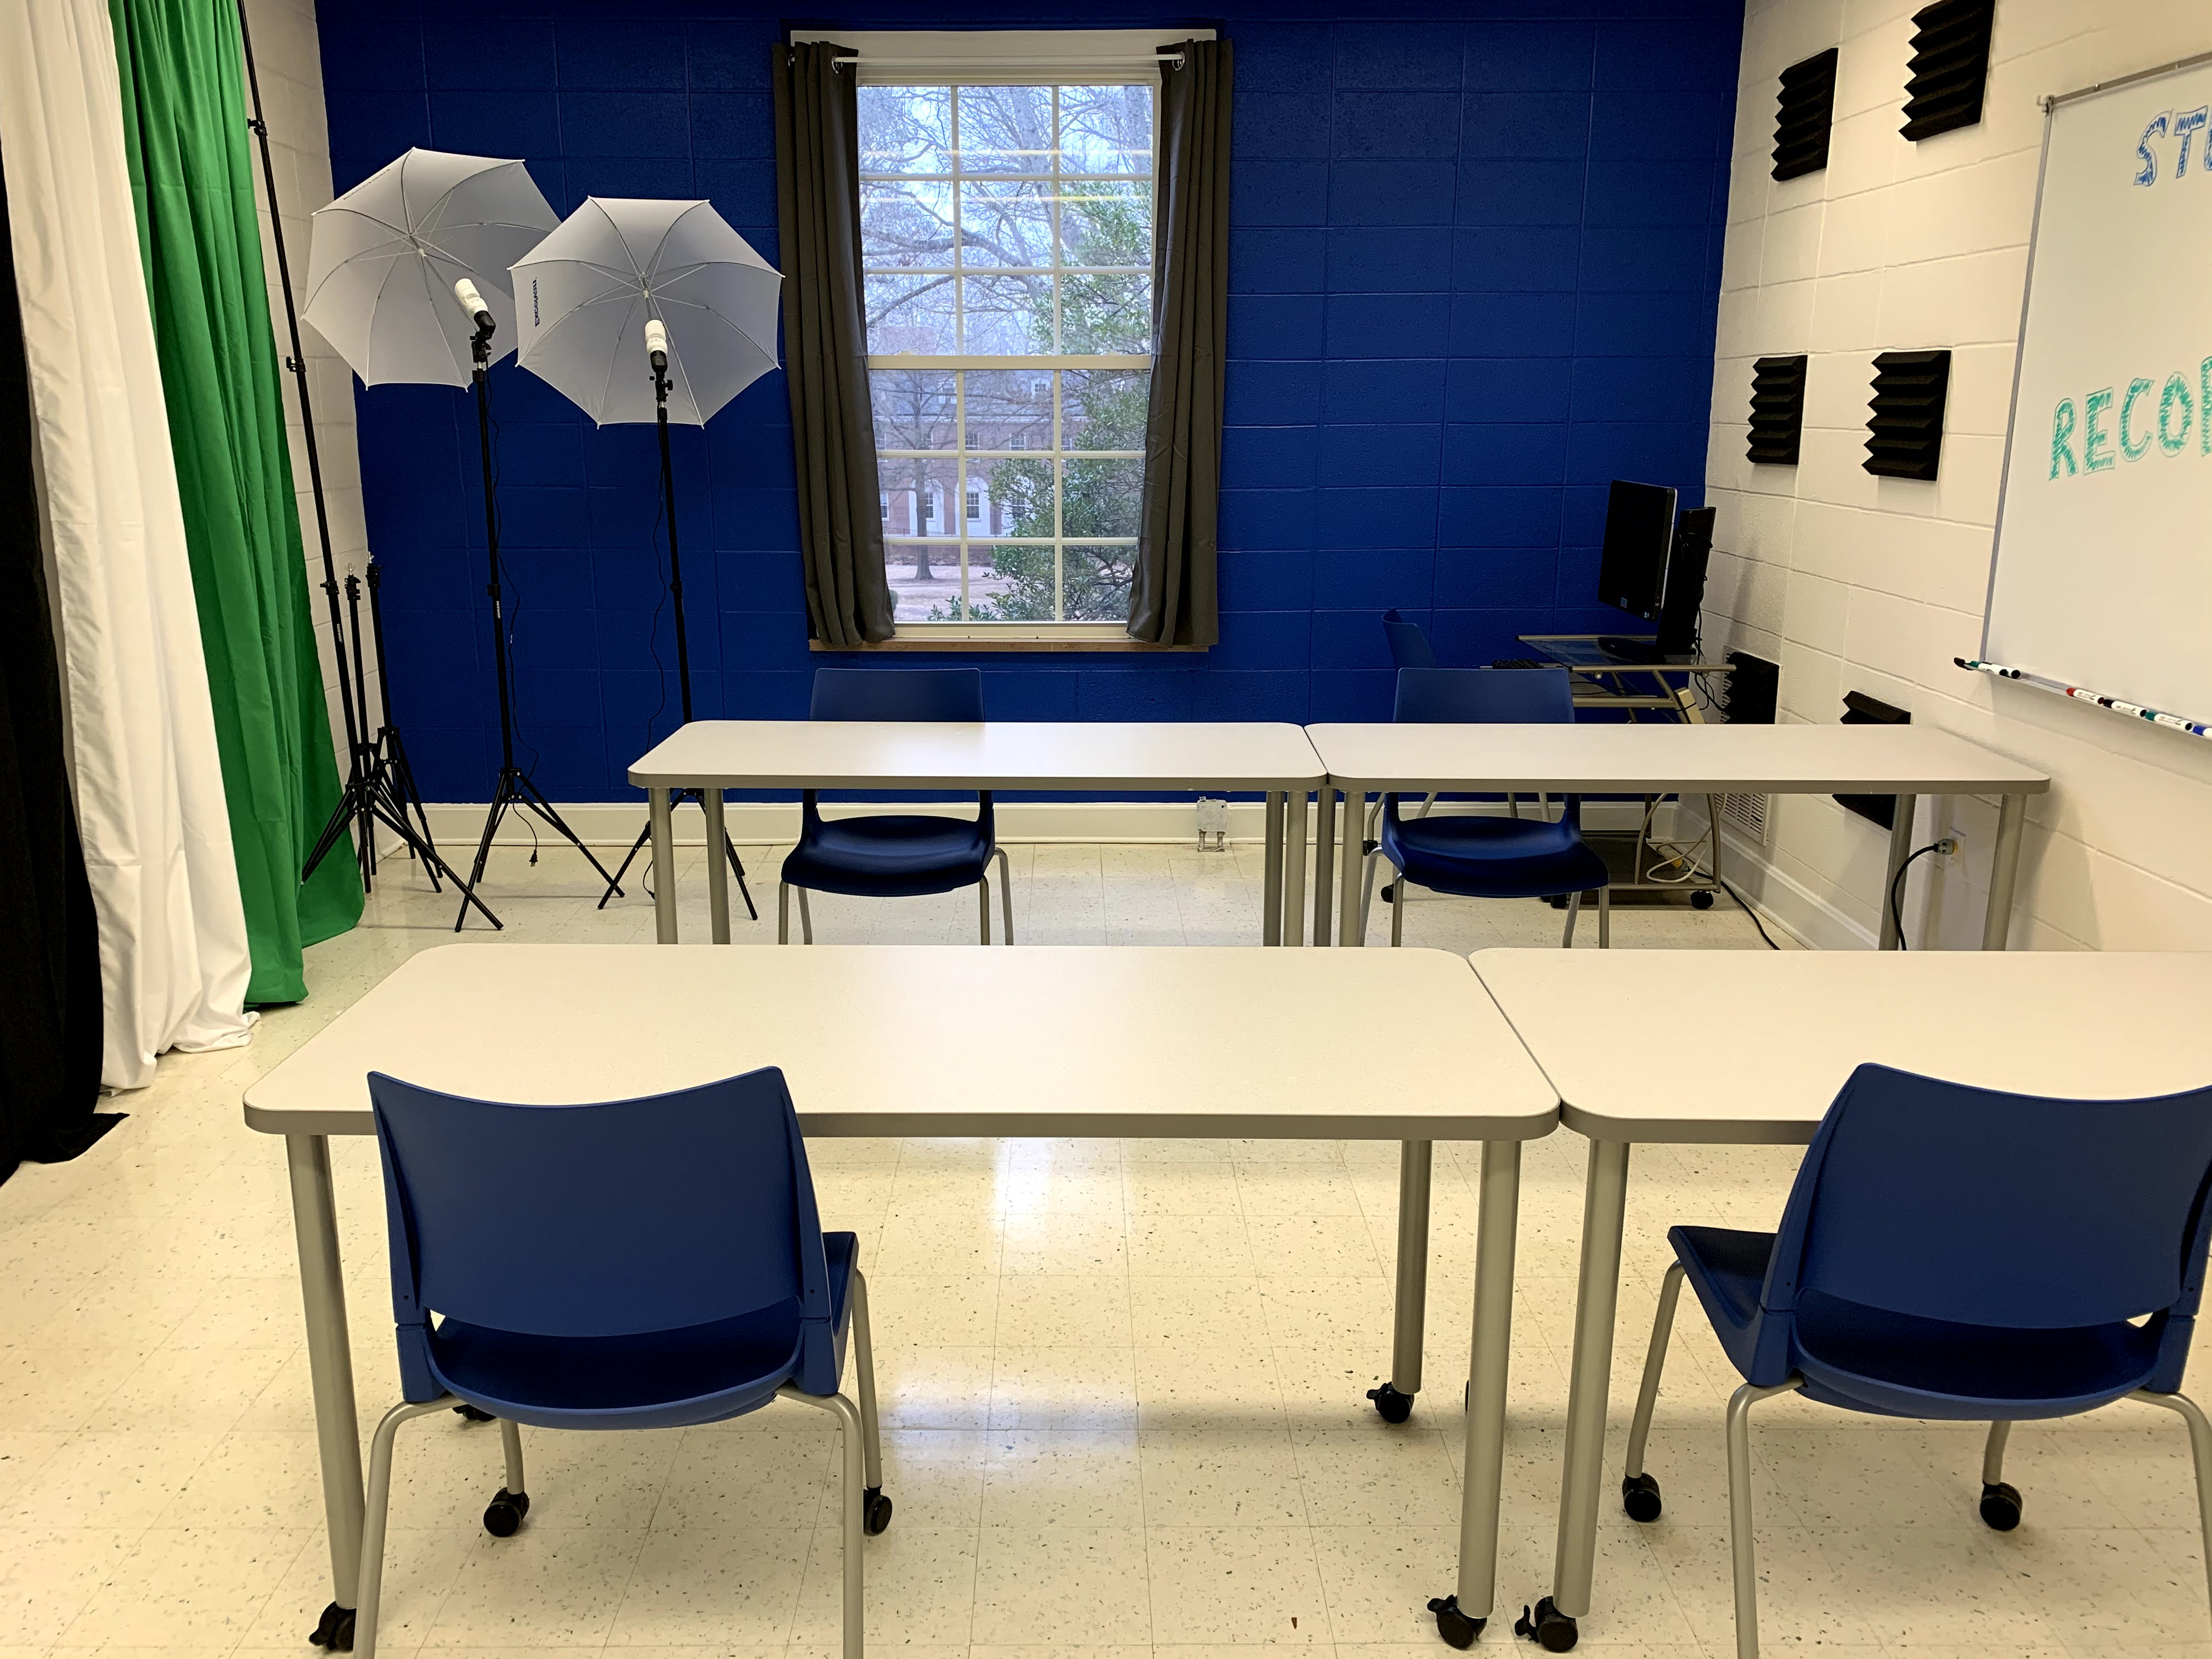 room with black, white, and green backdrops, umbrella lights, tables, chairs, and whiteboard